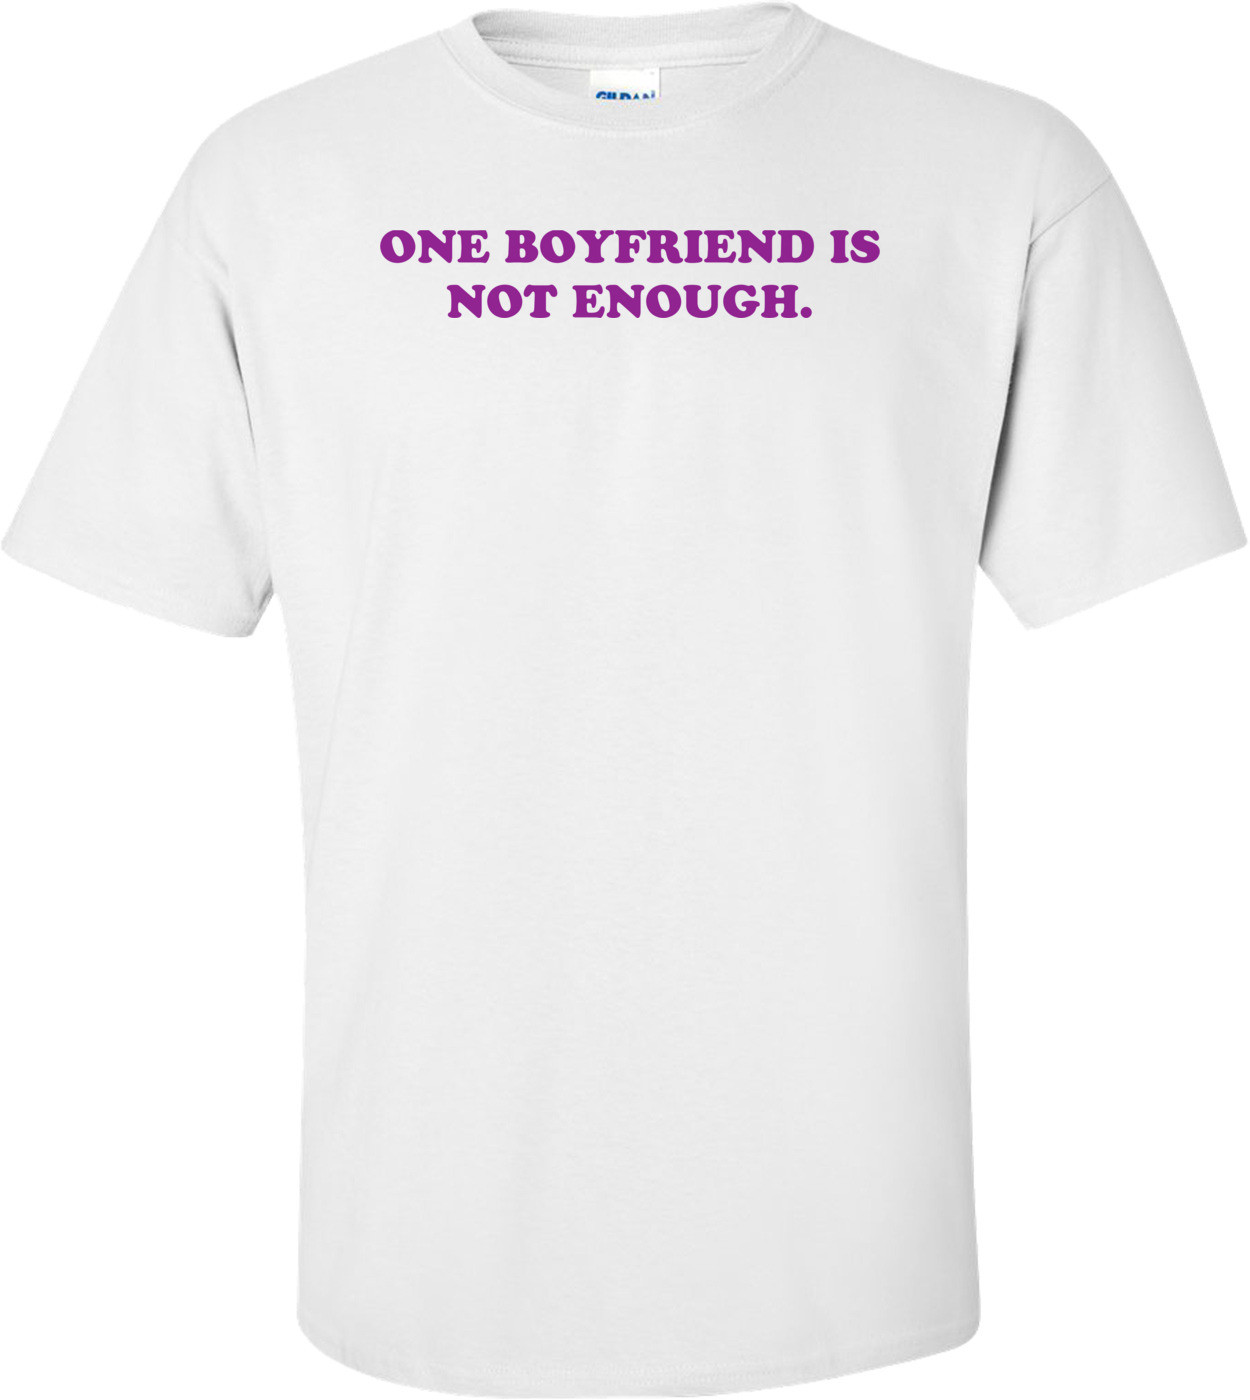 ONE BOYFRIEND IS NOT ENOUGH. Shirt